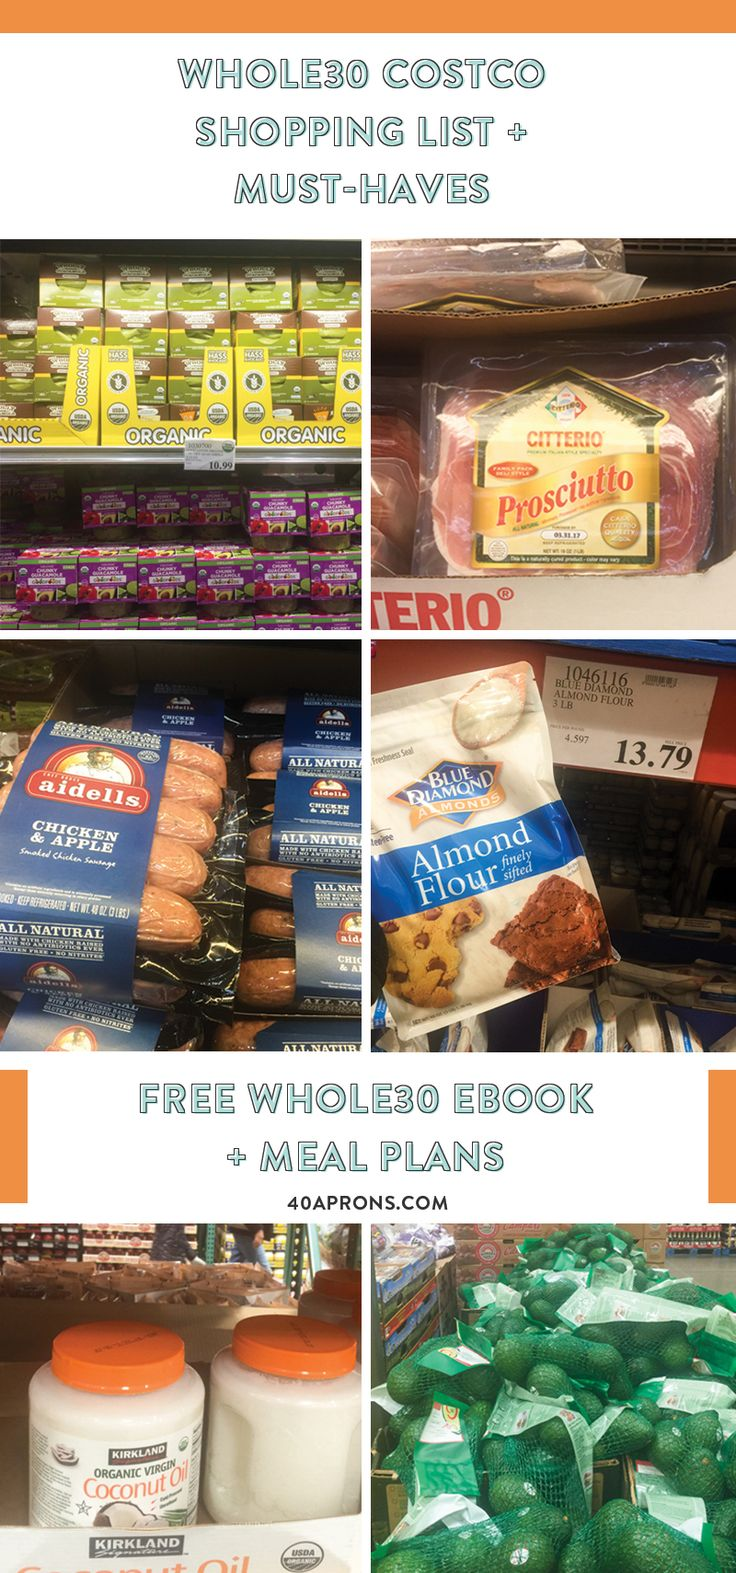 top ideas about costco food whole costco aip whole30 costco shopping list must haves